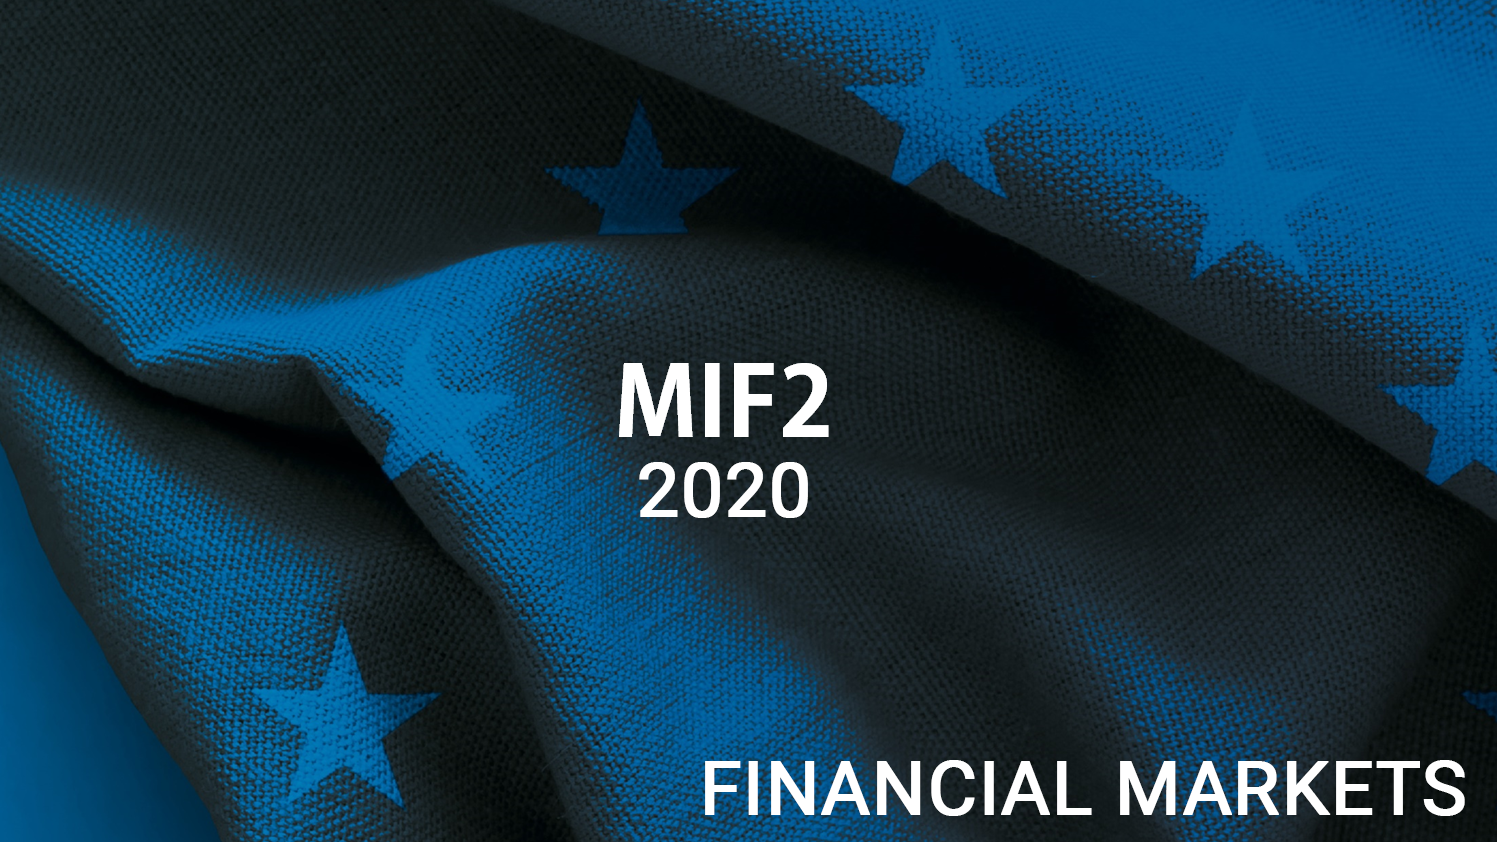 MIF2 - Common Core and Financial Market - BNP 2020